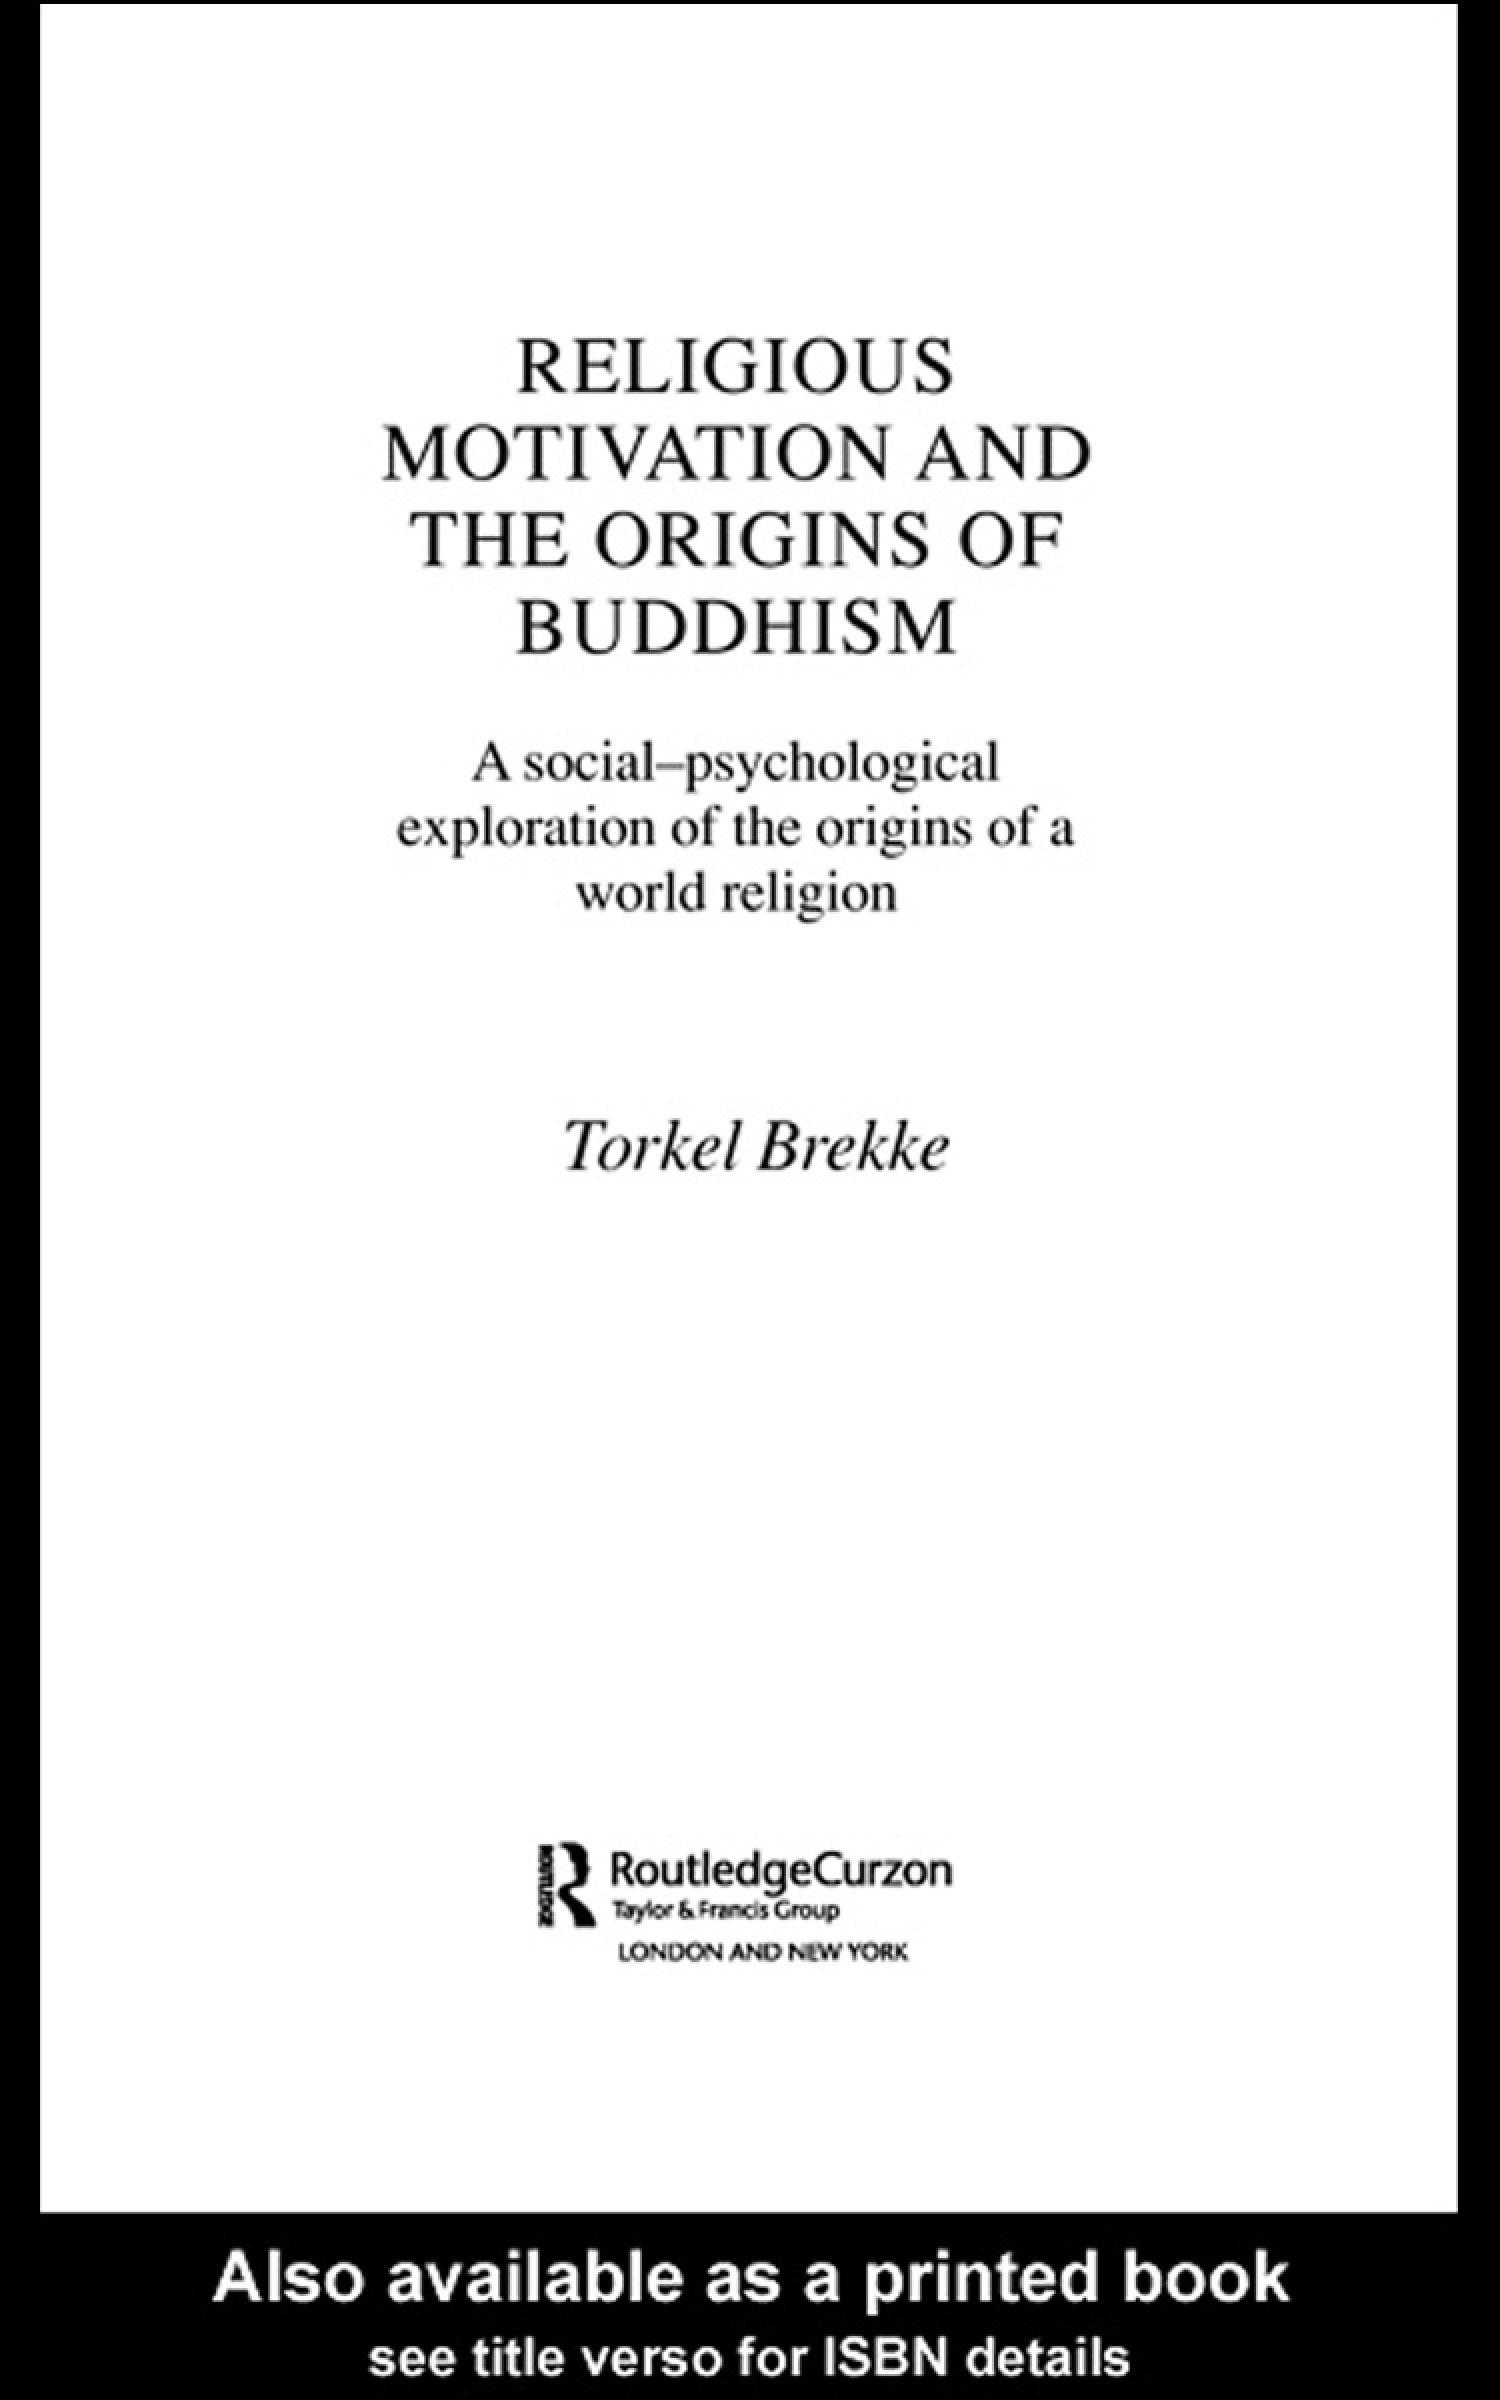 Religious Motivation and the Origins of Buddhism: A Social-Psychological Exploration of the Origins of a World Religion EB9780203994832